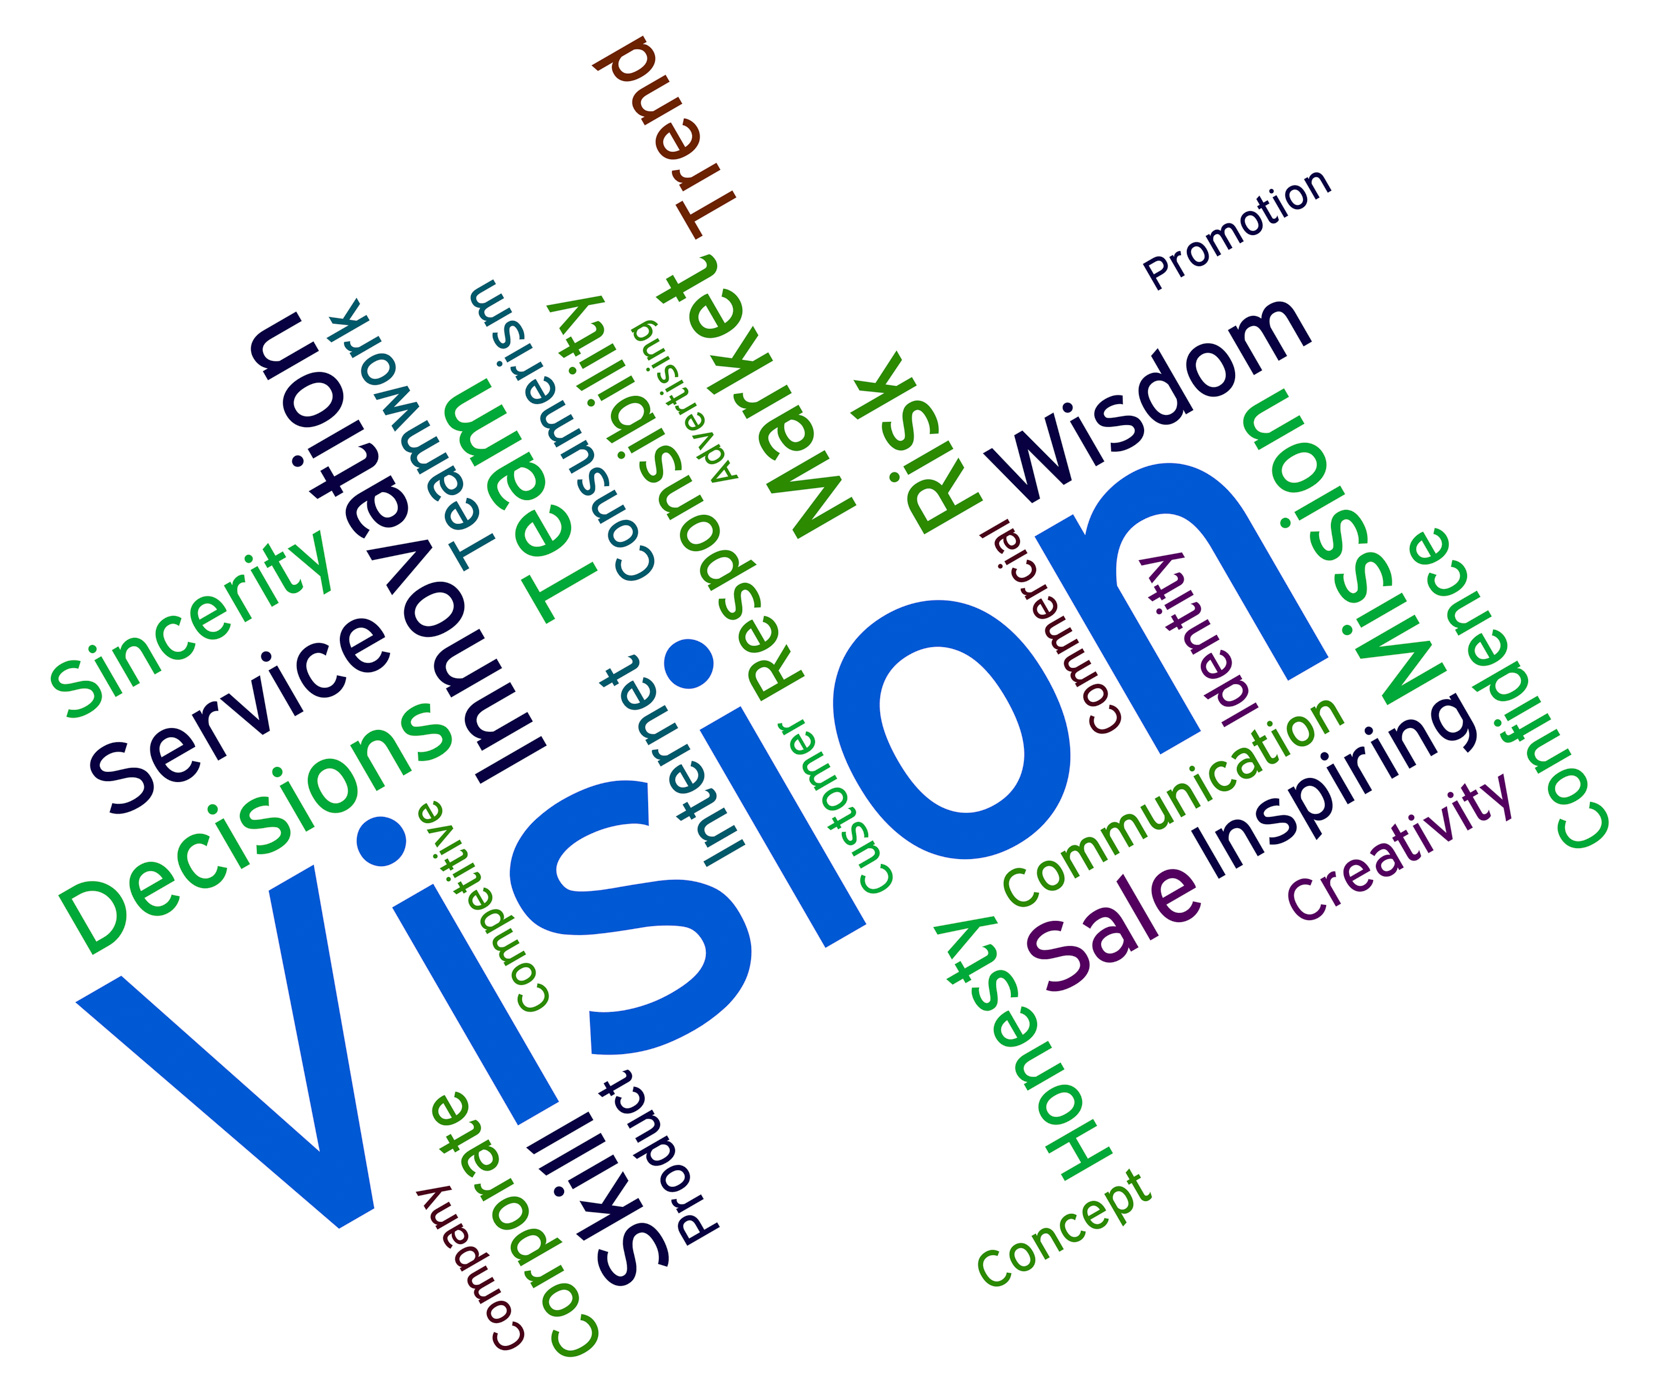 Vision word represents plans future and aim photo